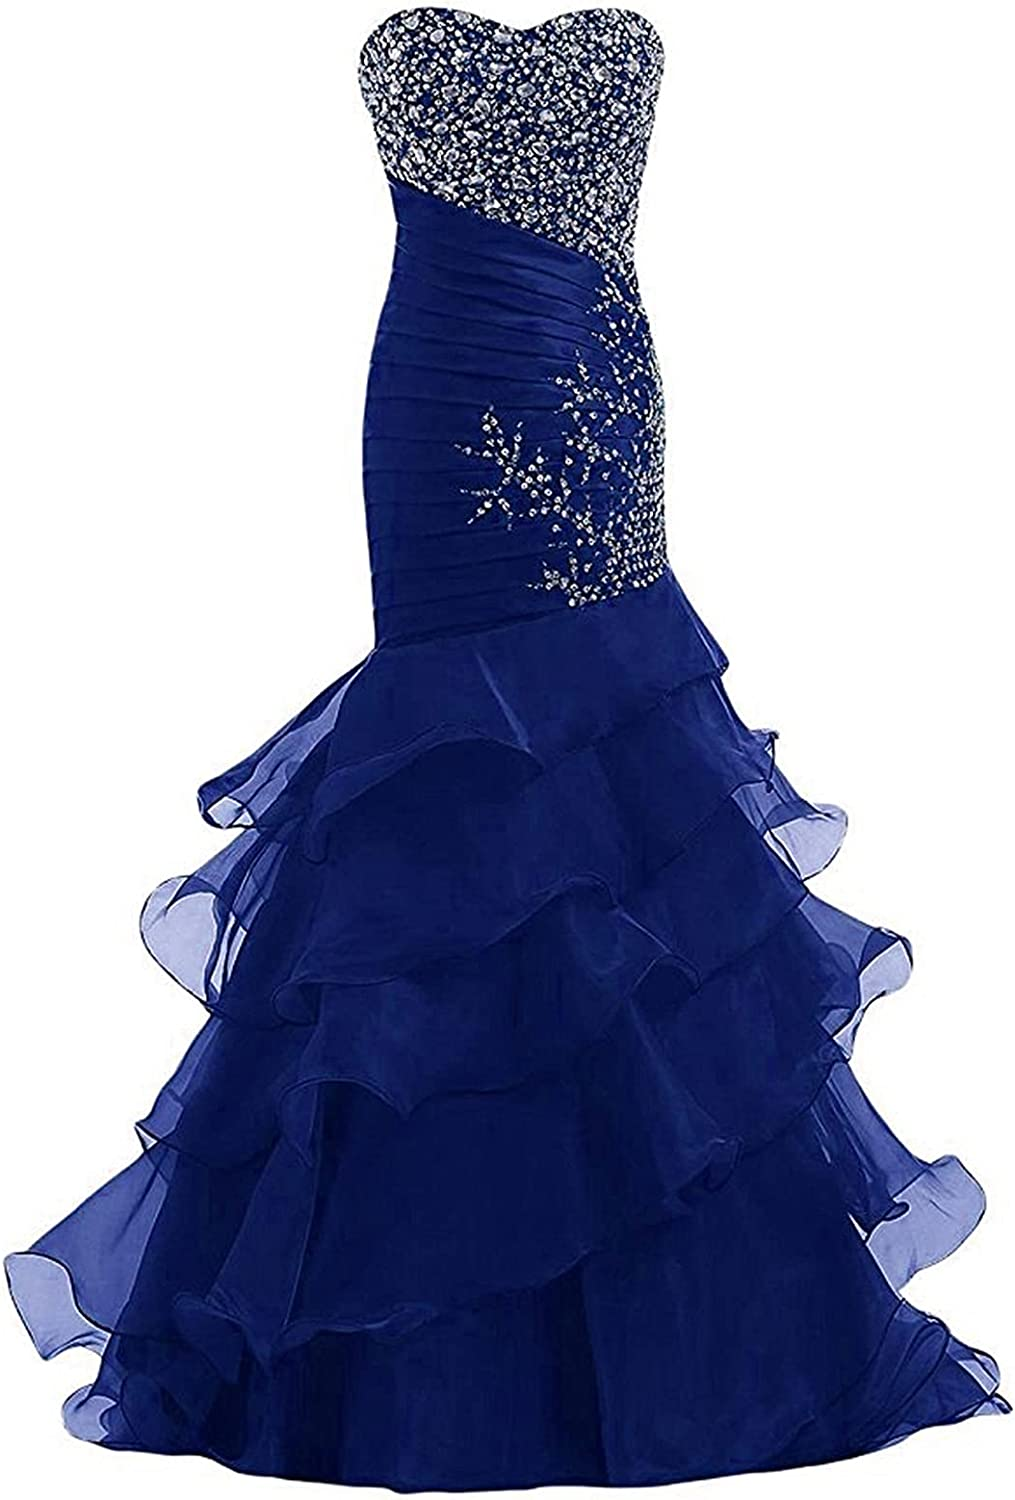 LL Bridal Women's Sweetheart Quinceanera Ball Gown Pageant Dress with Ruffles